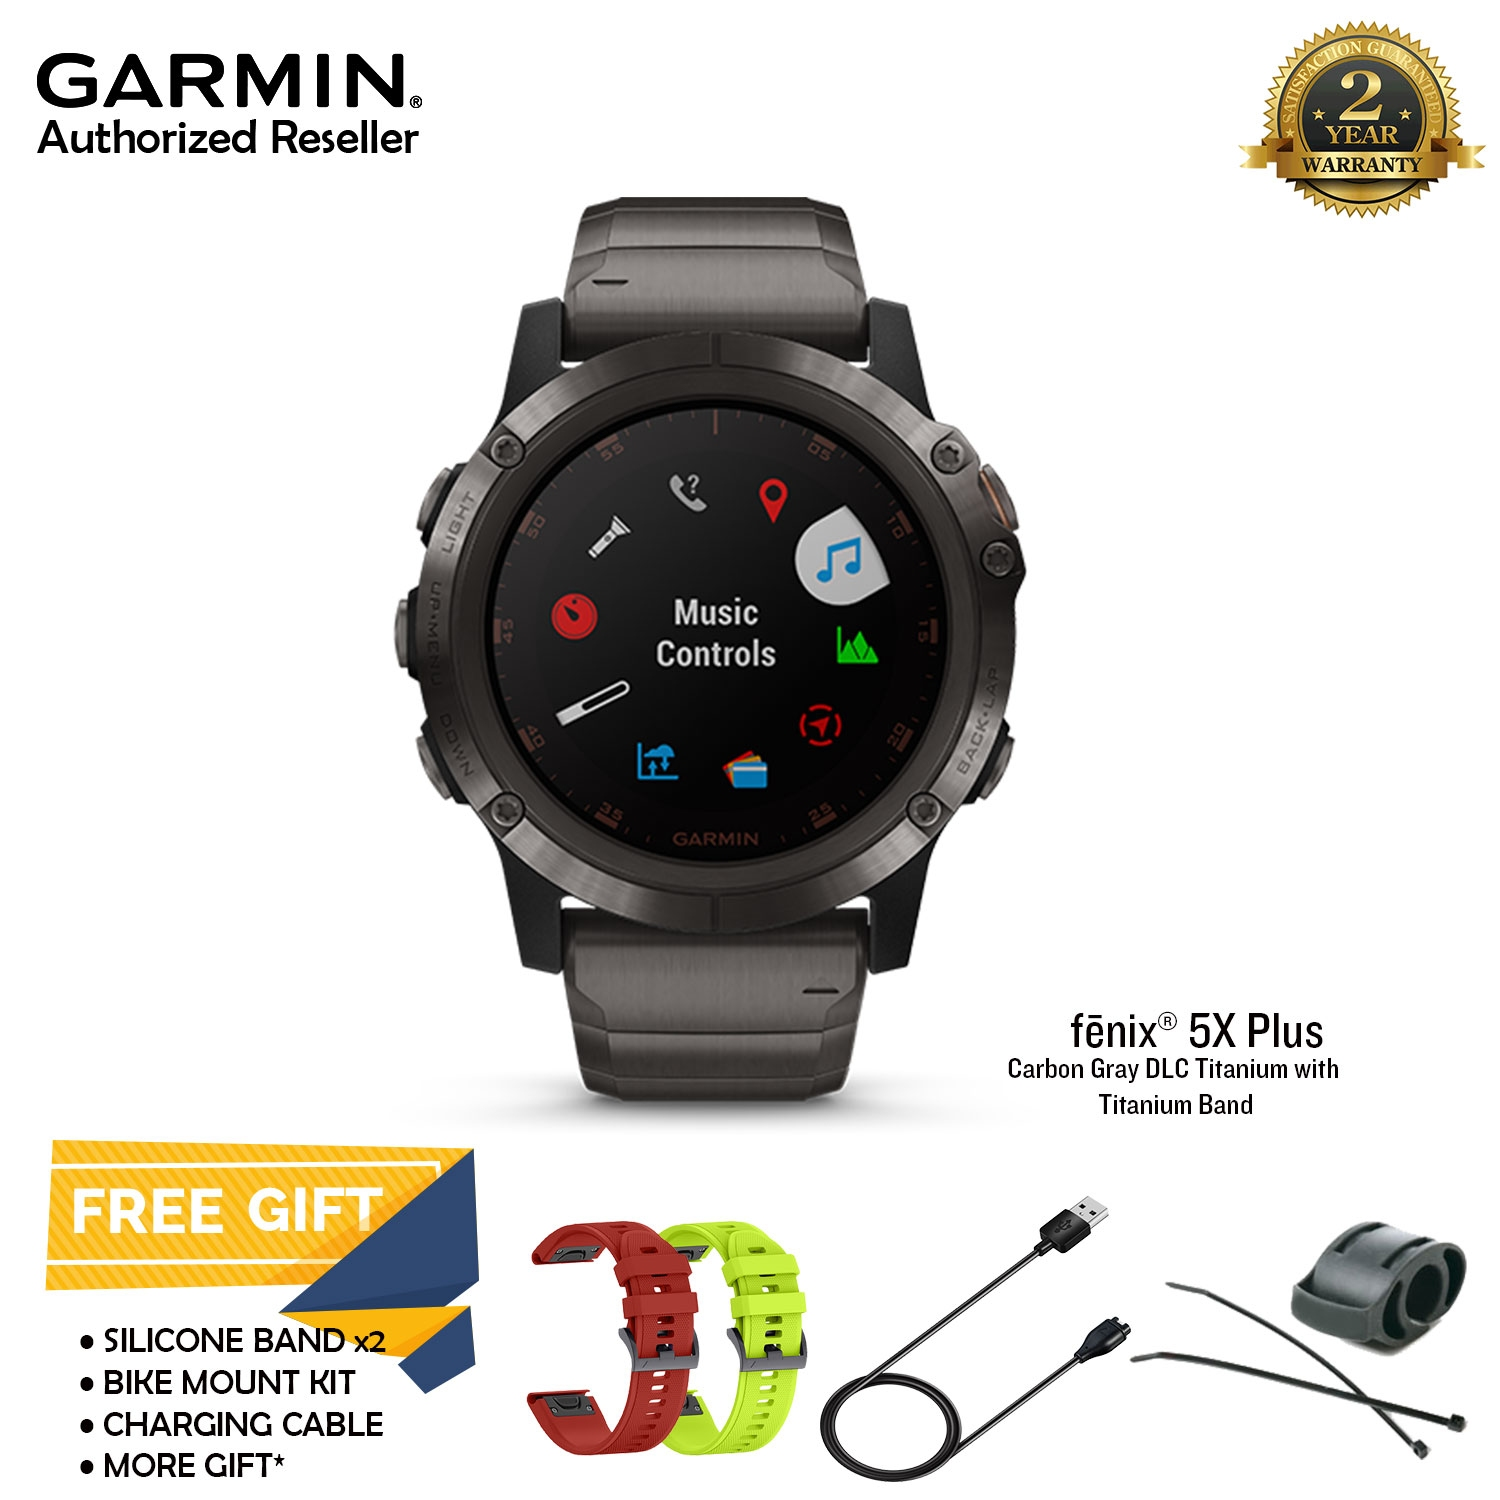 Garmin Fenix 5x Plus Gray Dlc Tita End 12 15 2020 12 00 Am